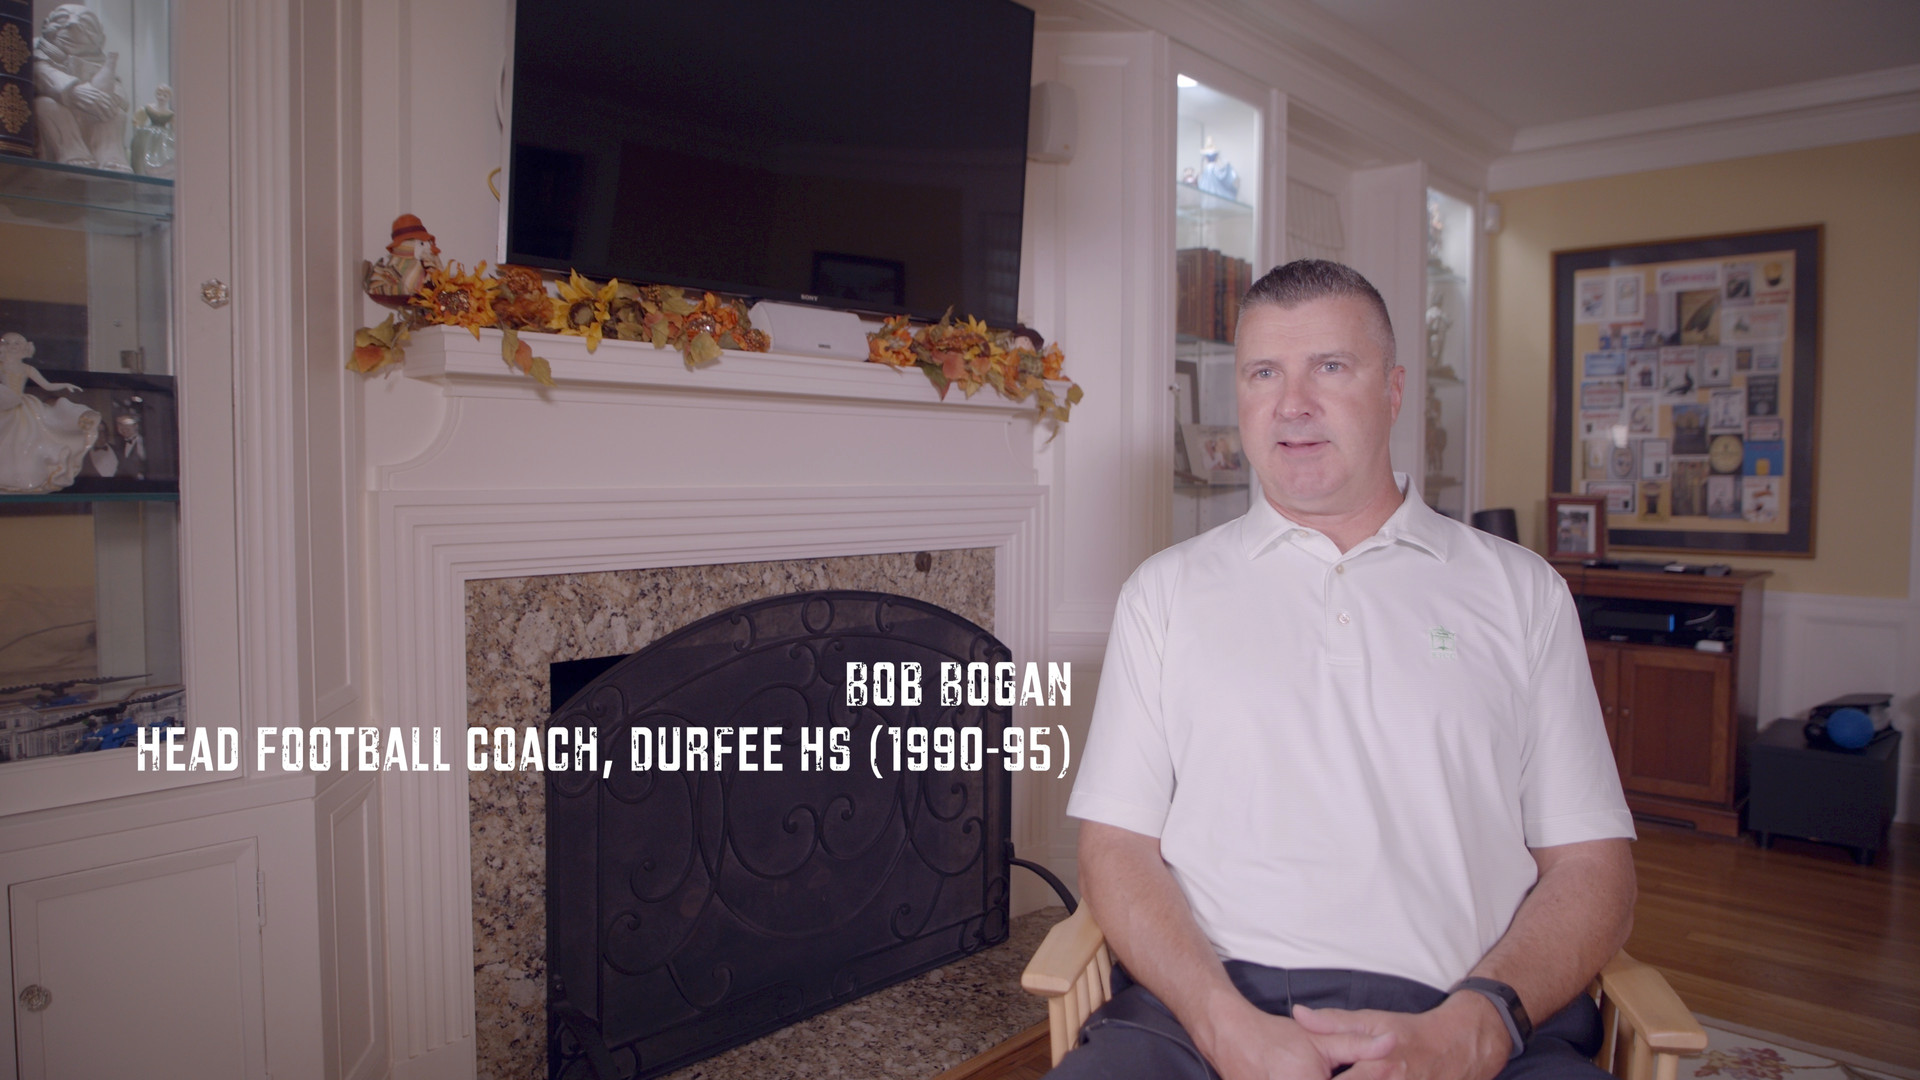 """This is Bob Bogan. He was my Highschool football coach and one of the few people that believed in me. He pushed me very hard. One day he told me that I had to give more than everyone else to be great person and football player. At the time I didn't know what it meant. However, whenever he saw me giving less than my best he hammered me. He didn't want me to be average. He would scream """"push yourself! World harder!"""" It sunk in. I'll forever be in debt to him for going out of his way to hold me accountable. I saw so many amazing high school athletes who ended up fizzling out. They succumb to the social pressure of drugs and alcohol. I idolized many of these fallen athletes. However, it was a powerful reminder to stay on course and keep my focused on my goals. I thank the city and the people for supporting a kid from Fall River. Thank you Bob Bogan for caring enough to be hard on me and many more. I'm extremely grateful."""